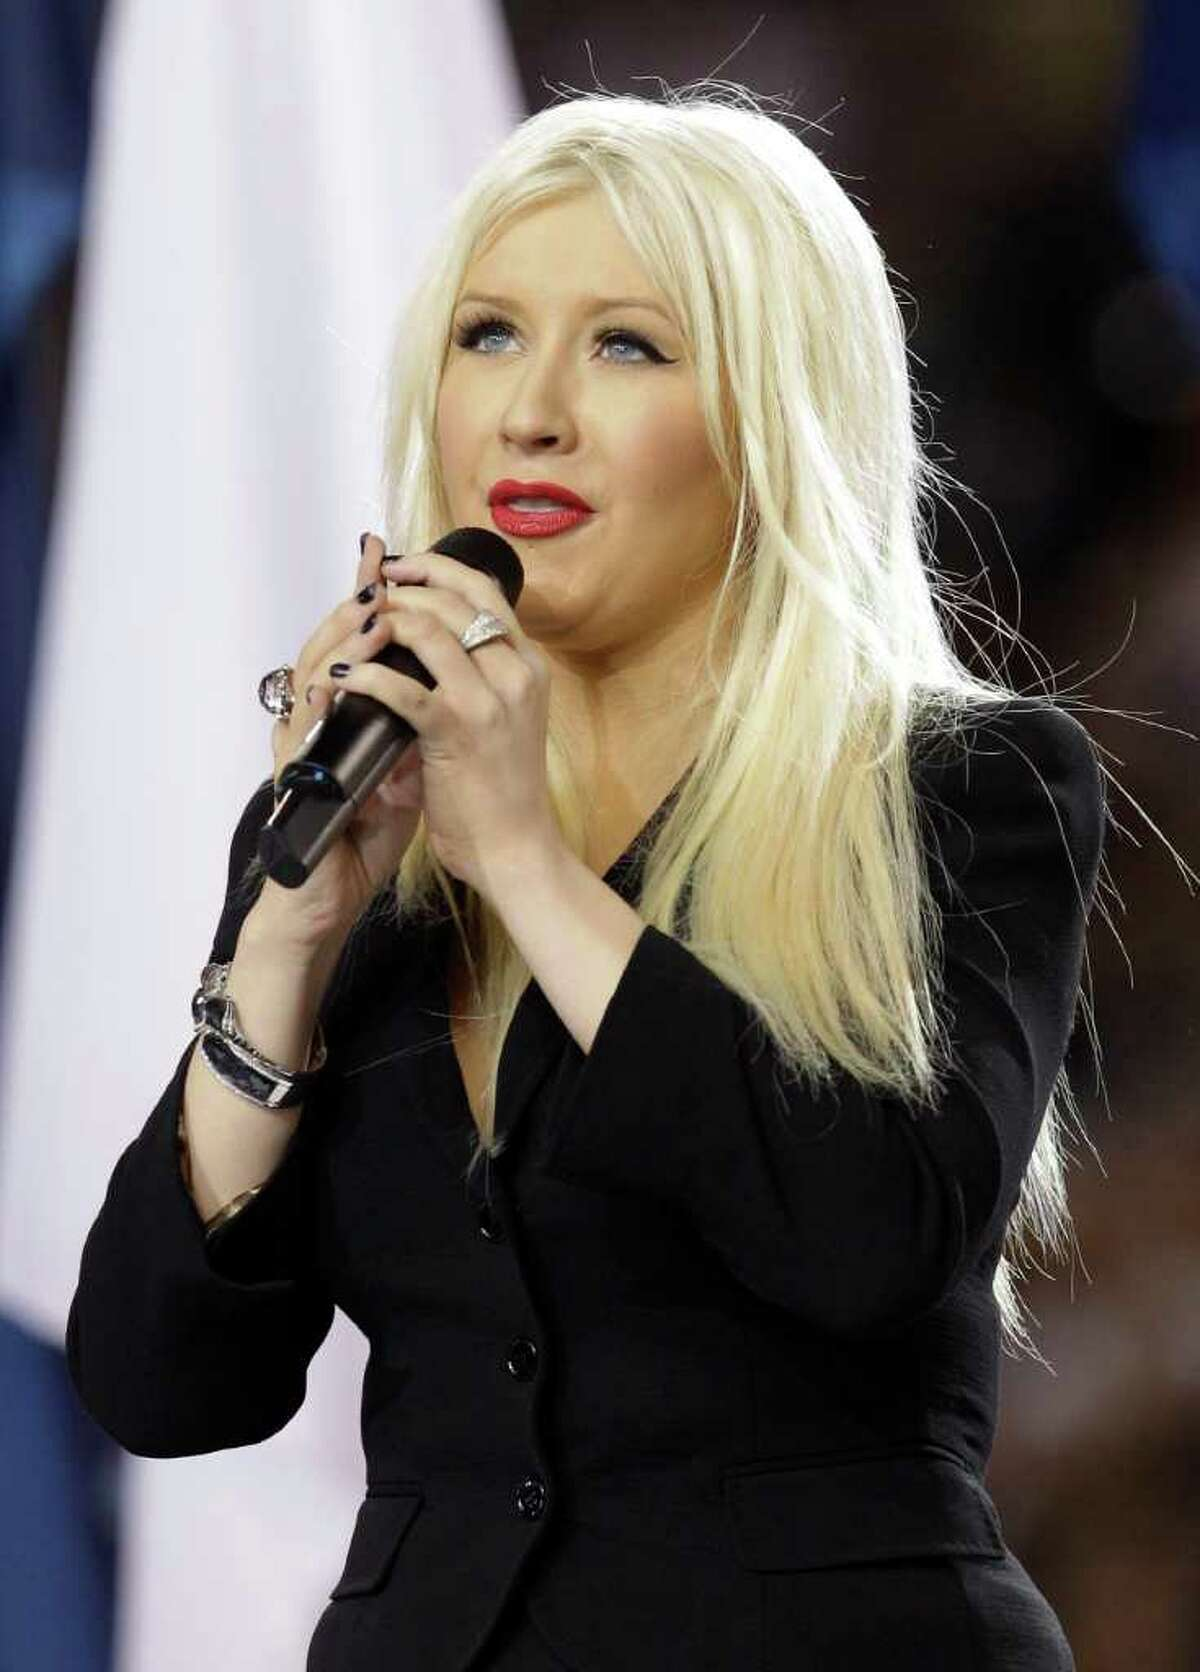 Christina Aguilera sings the national anthem before the NFL football Super Bowl XLV game between the Green Bay Packers and the Pittsburgh Steelers on Sunday, Feb. 6, 2011, in Arlington, Texas.